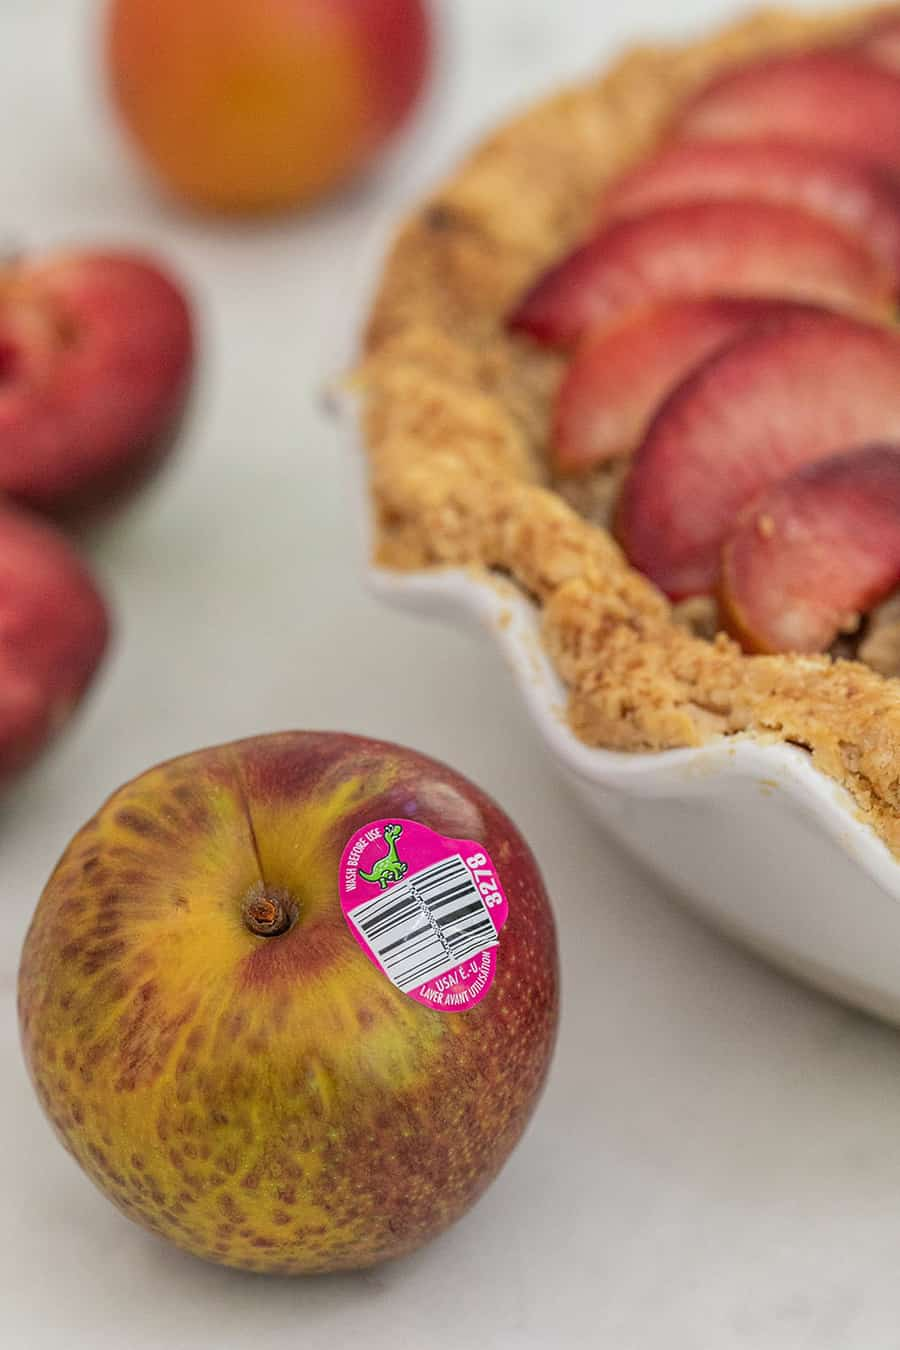 A plumcot with a pink label.